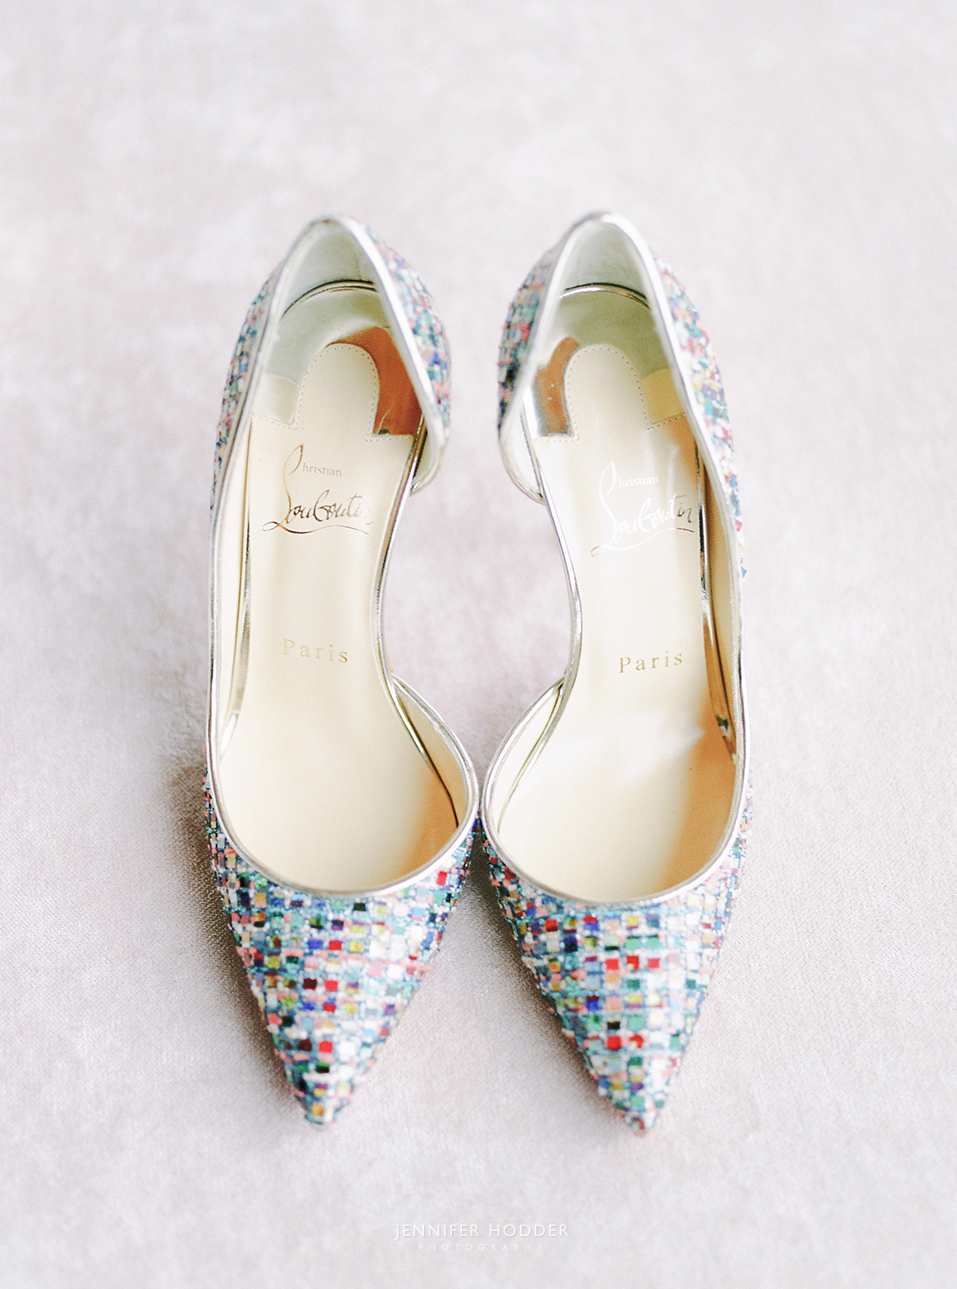 Christian Loubotin wedding shoes